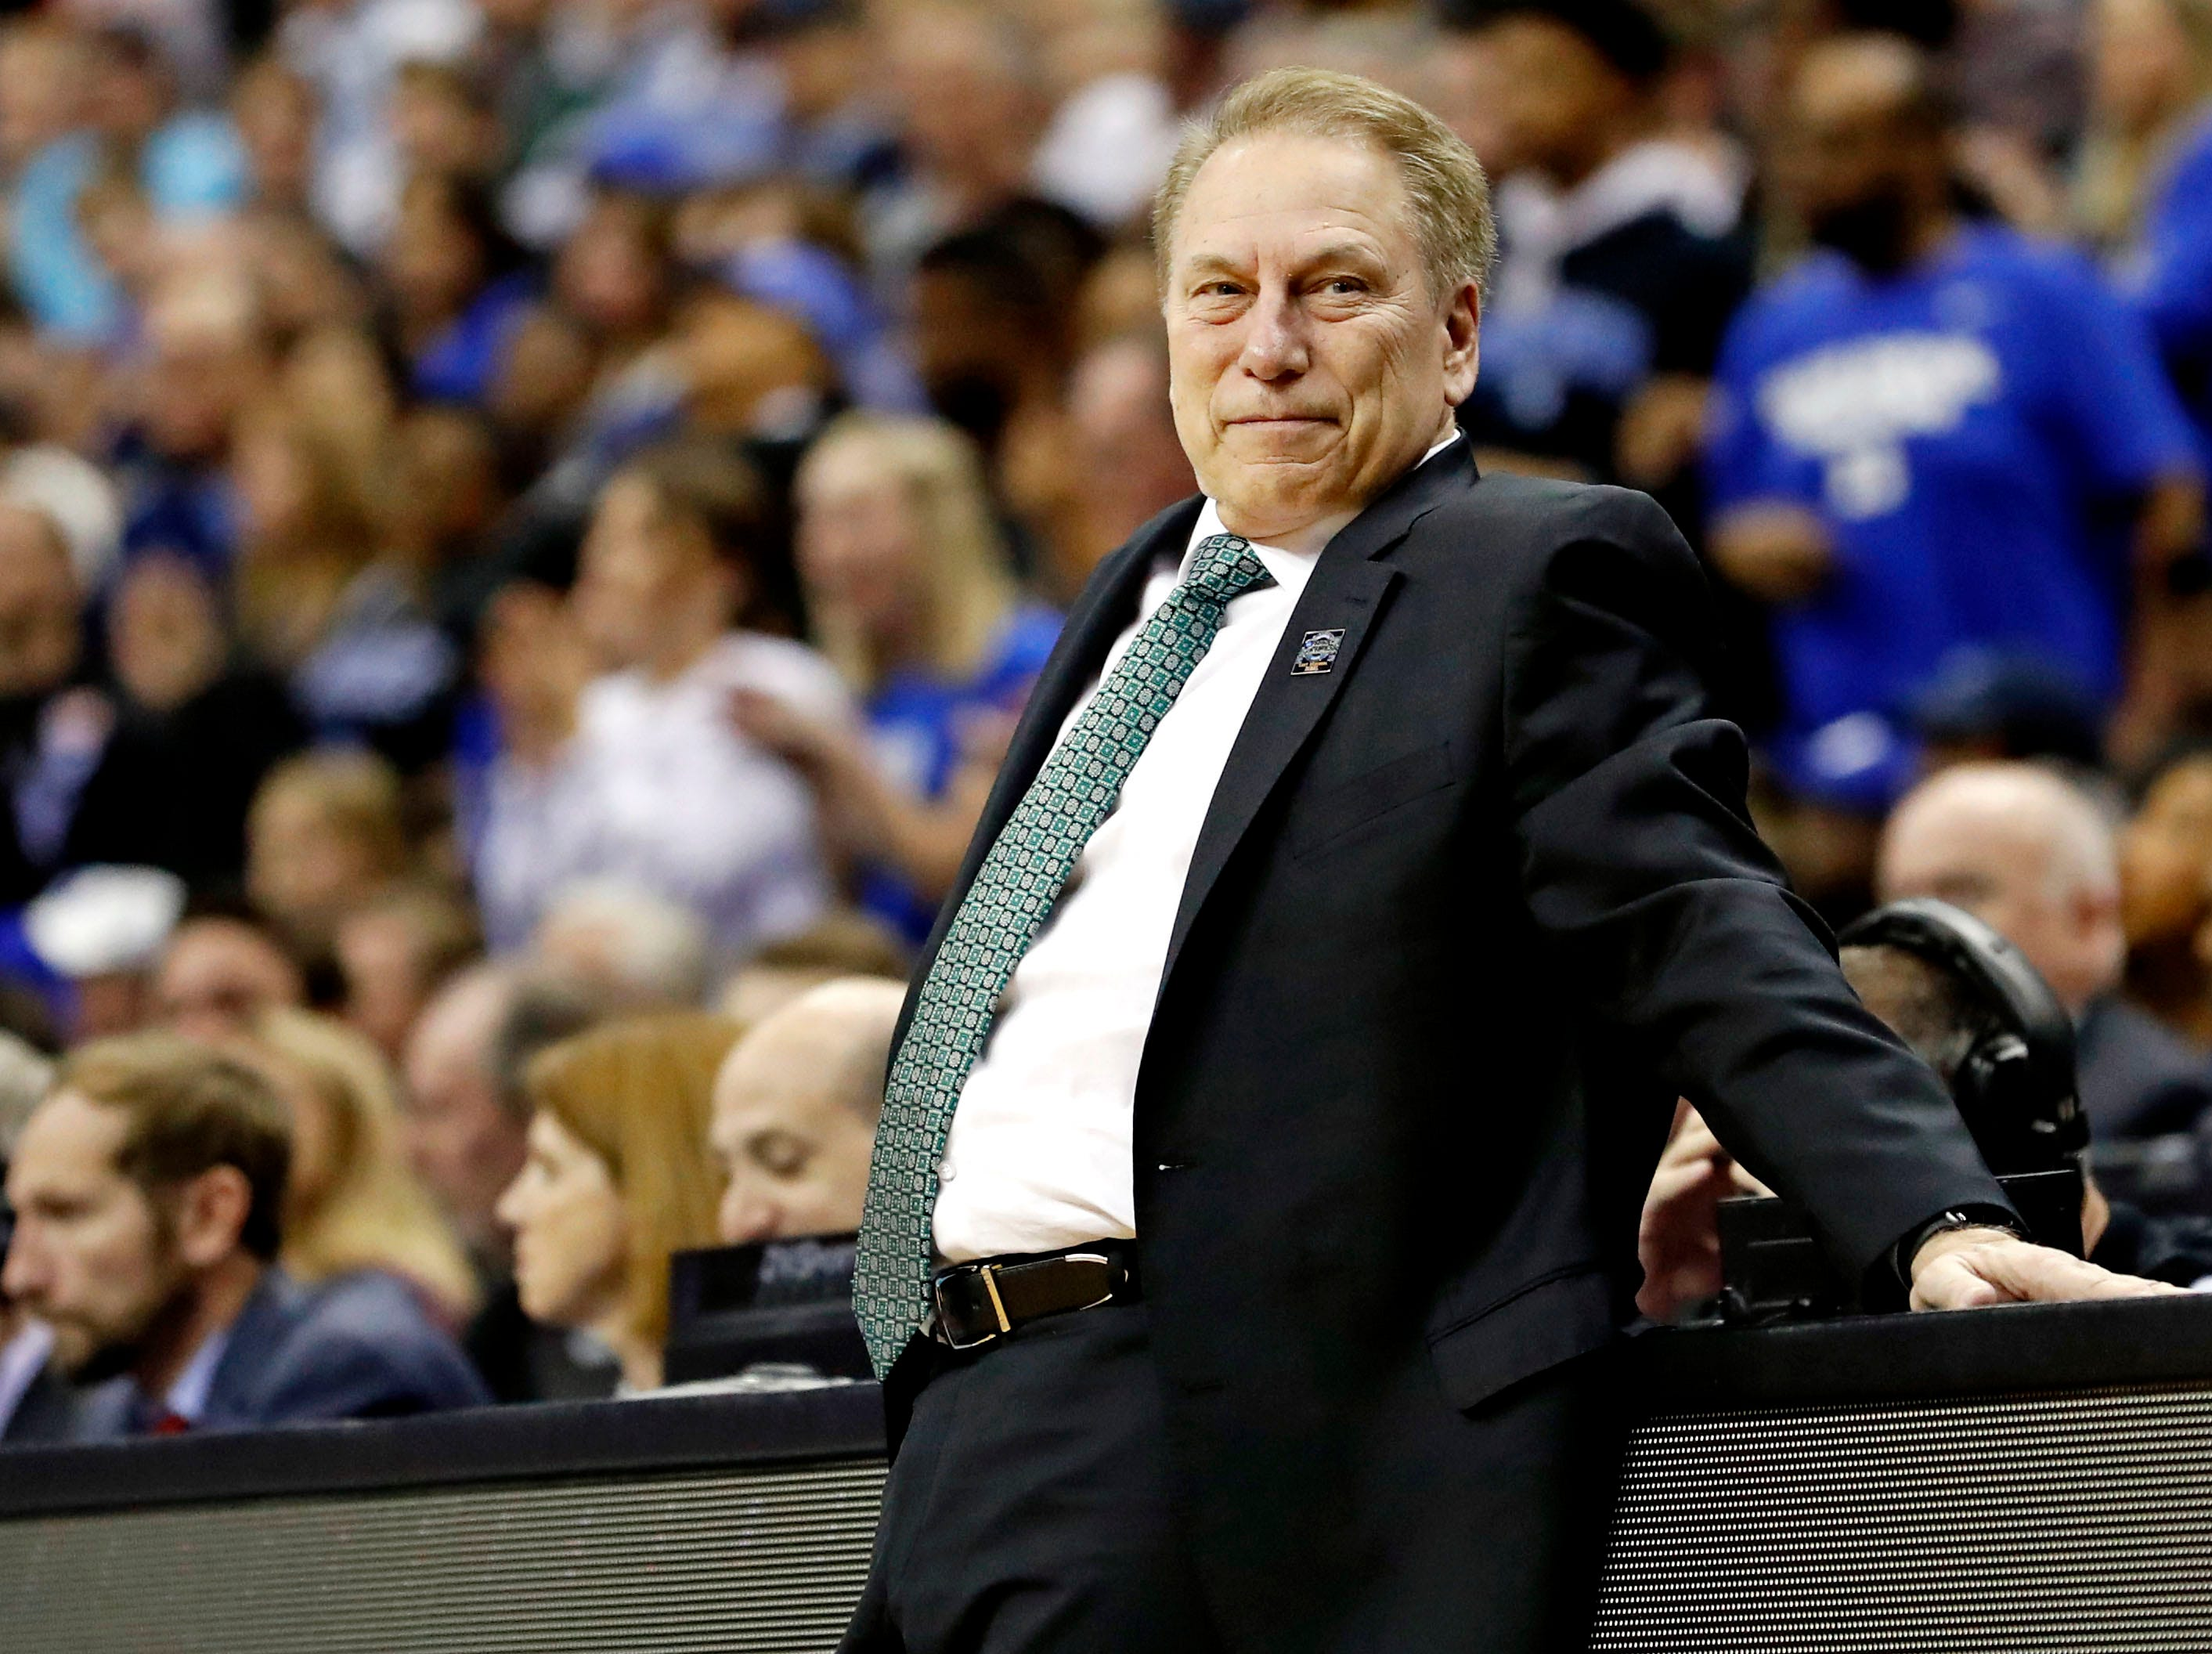 Mar 31, 2019; Washington, DC, USA; Michigan State Spartans head coach Tom Izzo reacts during the second half against the Duke Blue Devils in the championship game of the east regional of the 2019 NCAA Tournament at Capital One Arena. Mandatory Credit: Geoff Burke-USA TODAY Sports